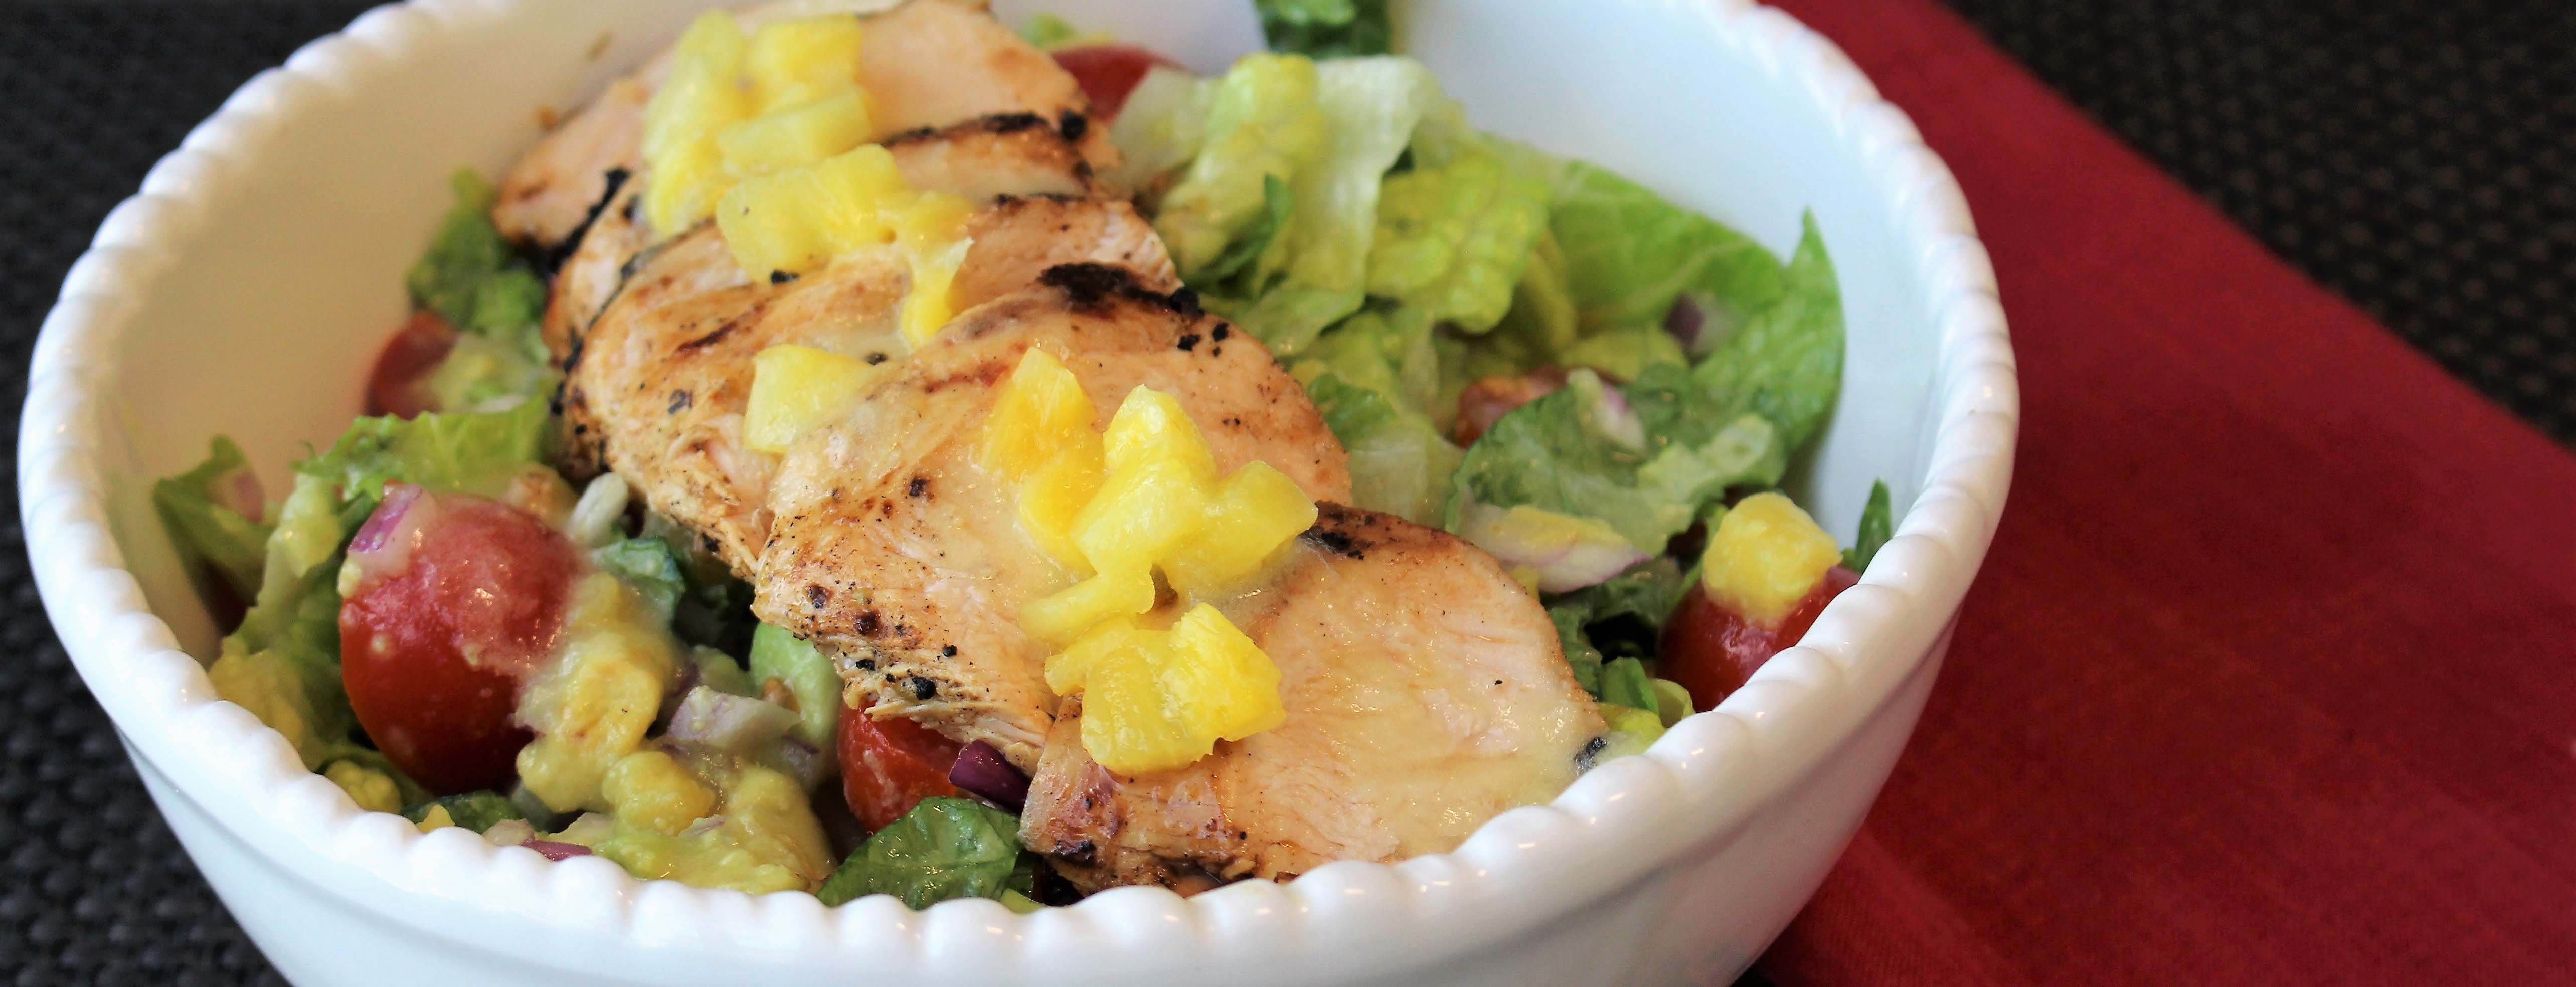 Photo of Grilled Piri Piri Chicken Pineapple Salad Bowl